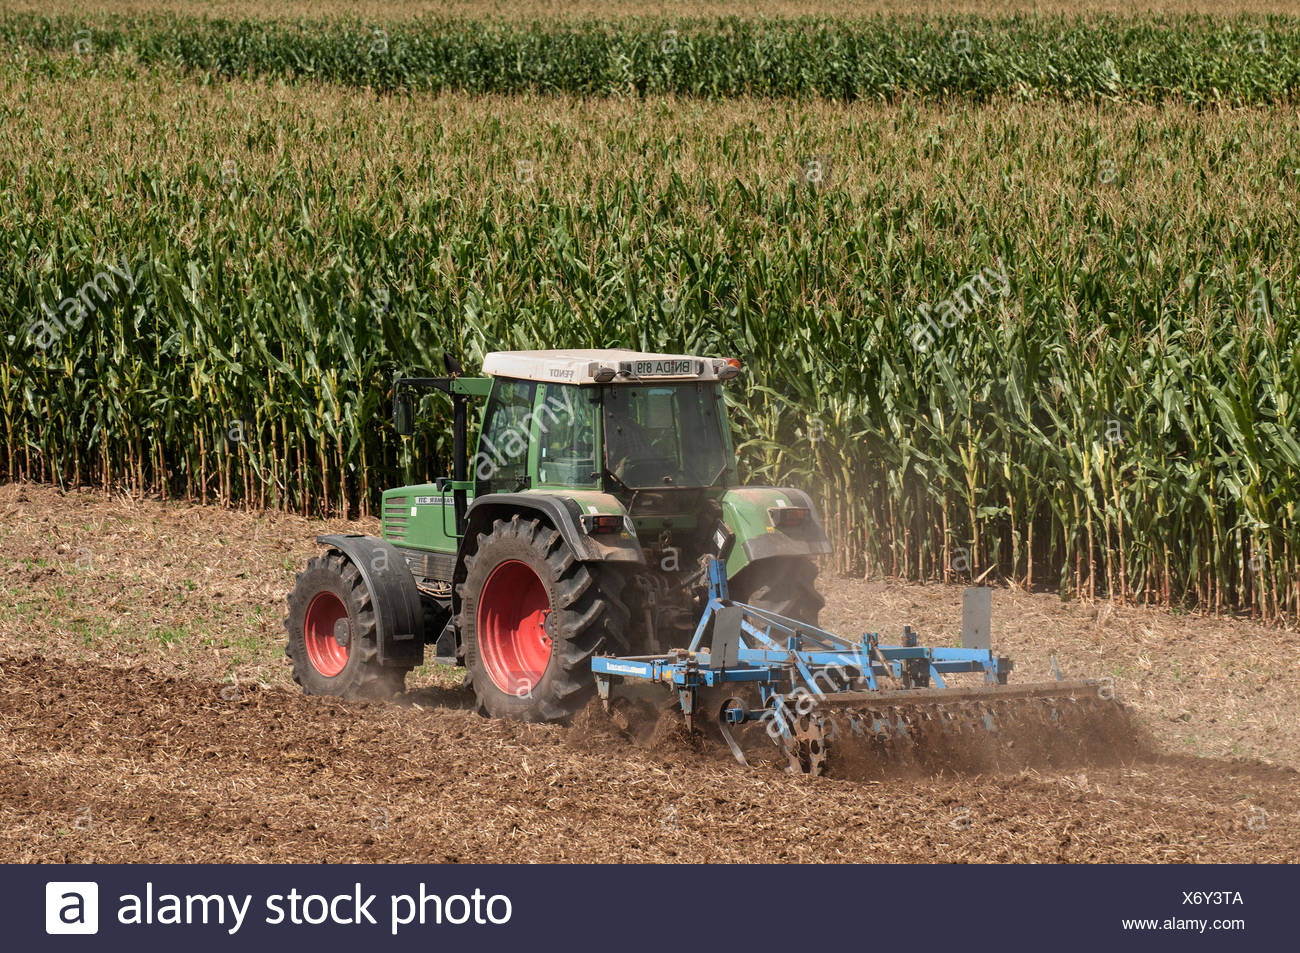 Tractor with a cultivator in front of a field of Corn (Zea mays subsp. Mays), PublicGround - Stock Image